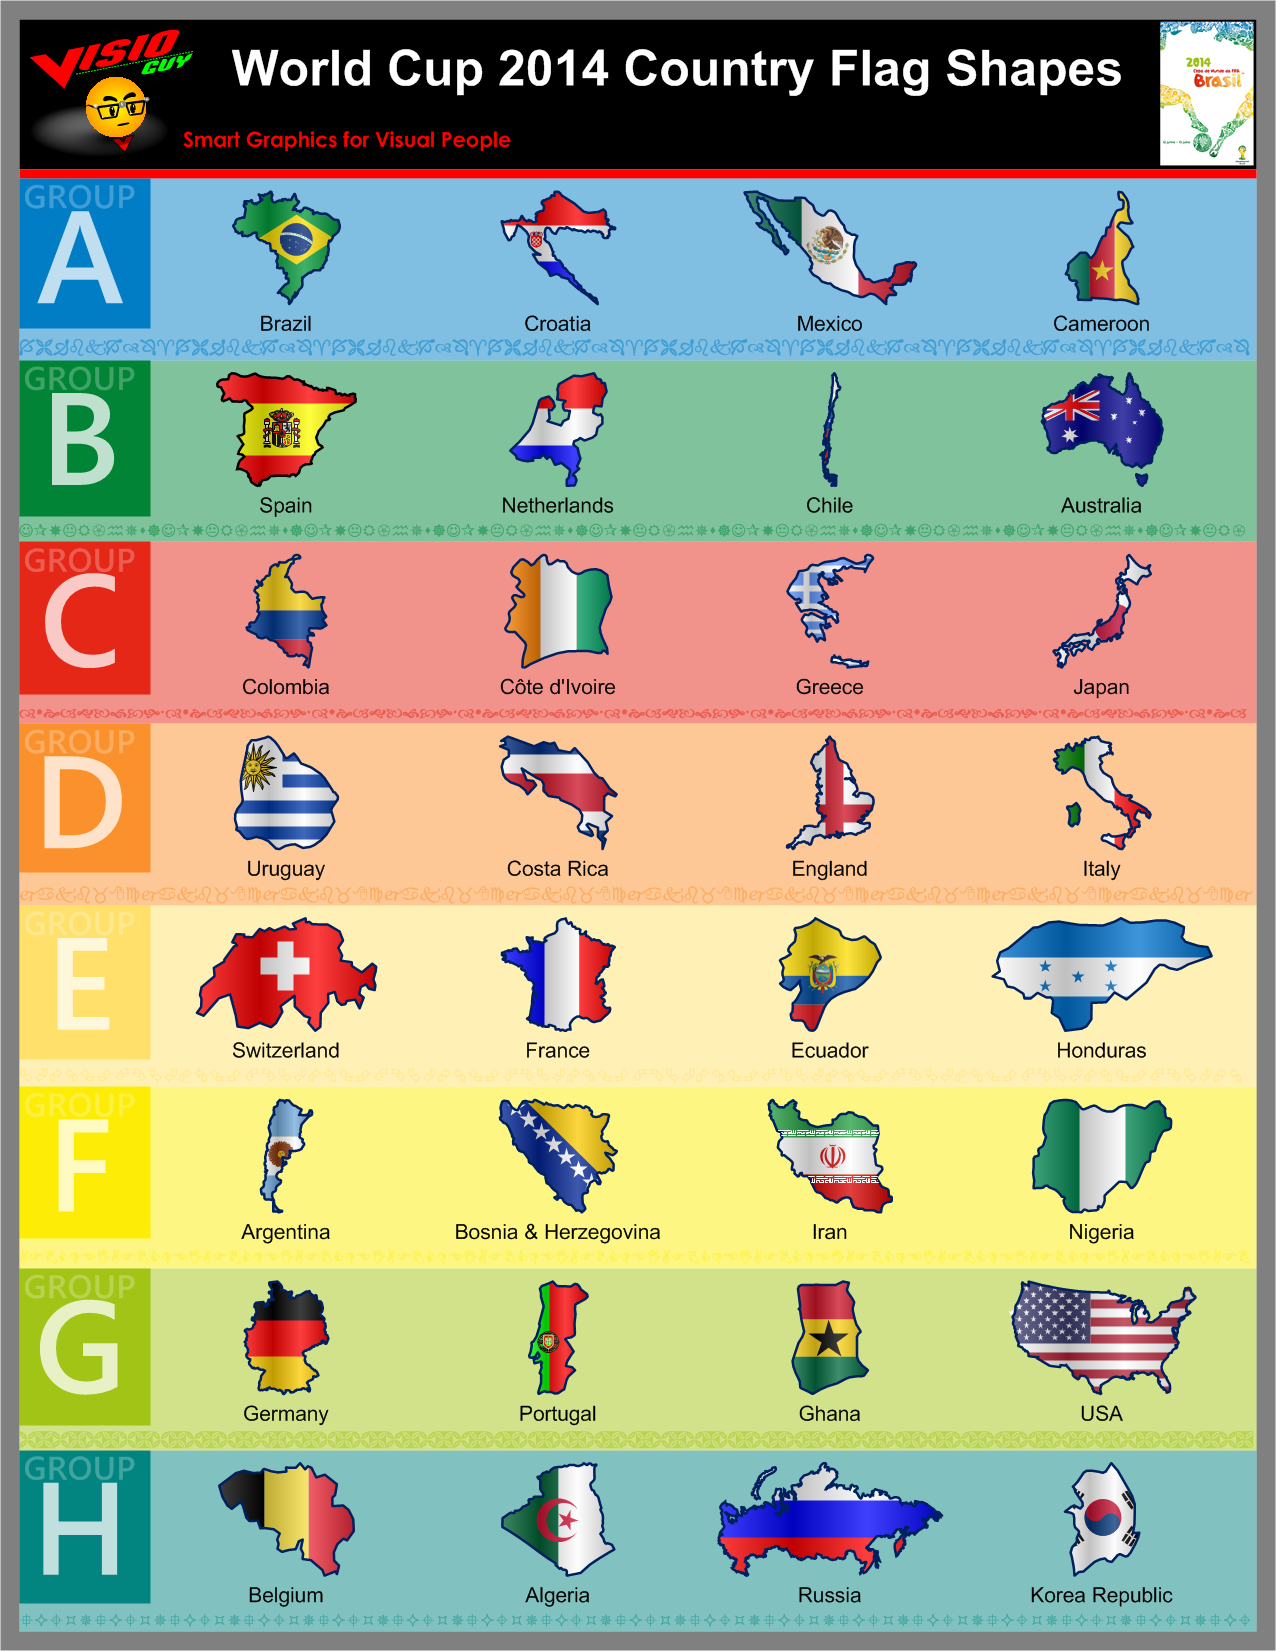 world cup 2014 country flag shapes - Visio Bracket Shape